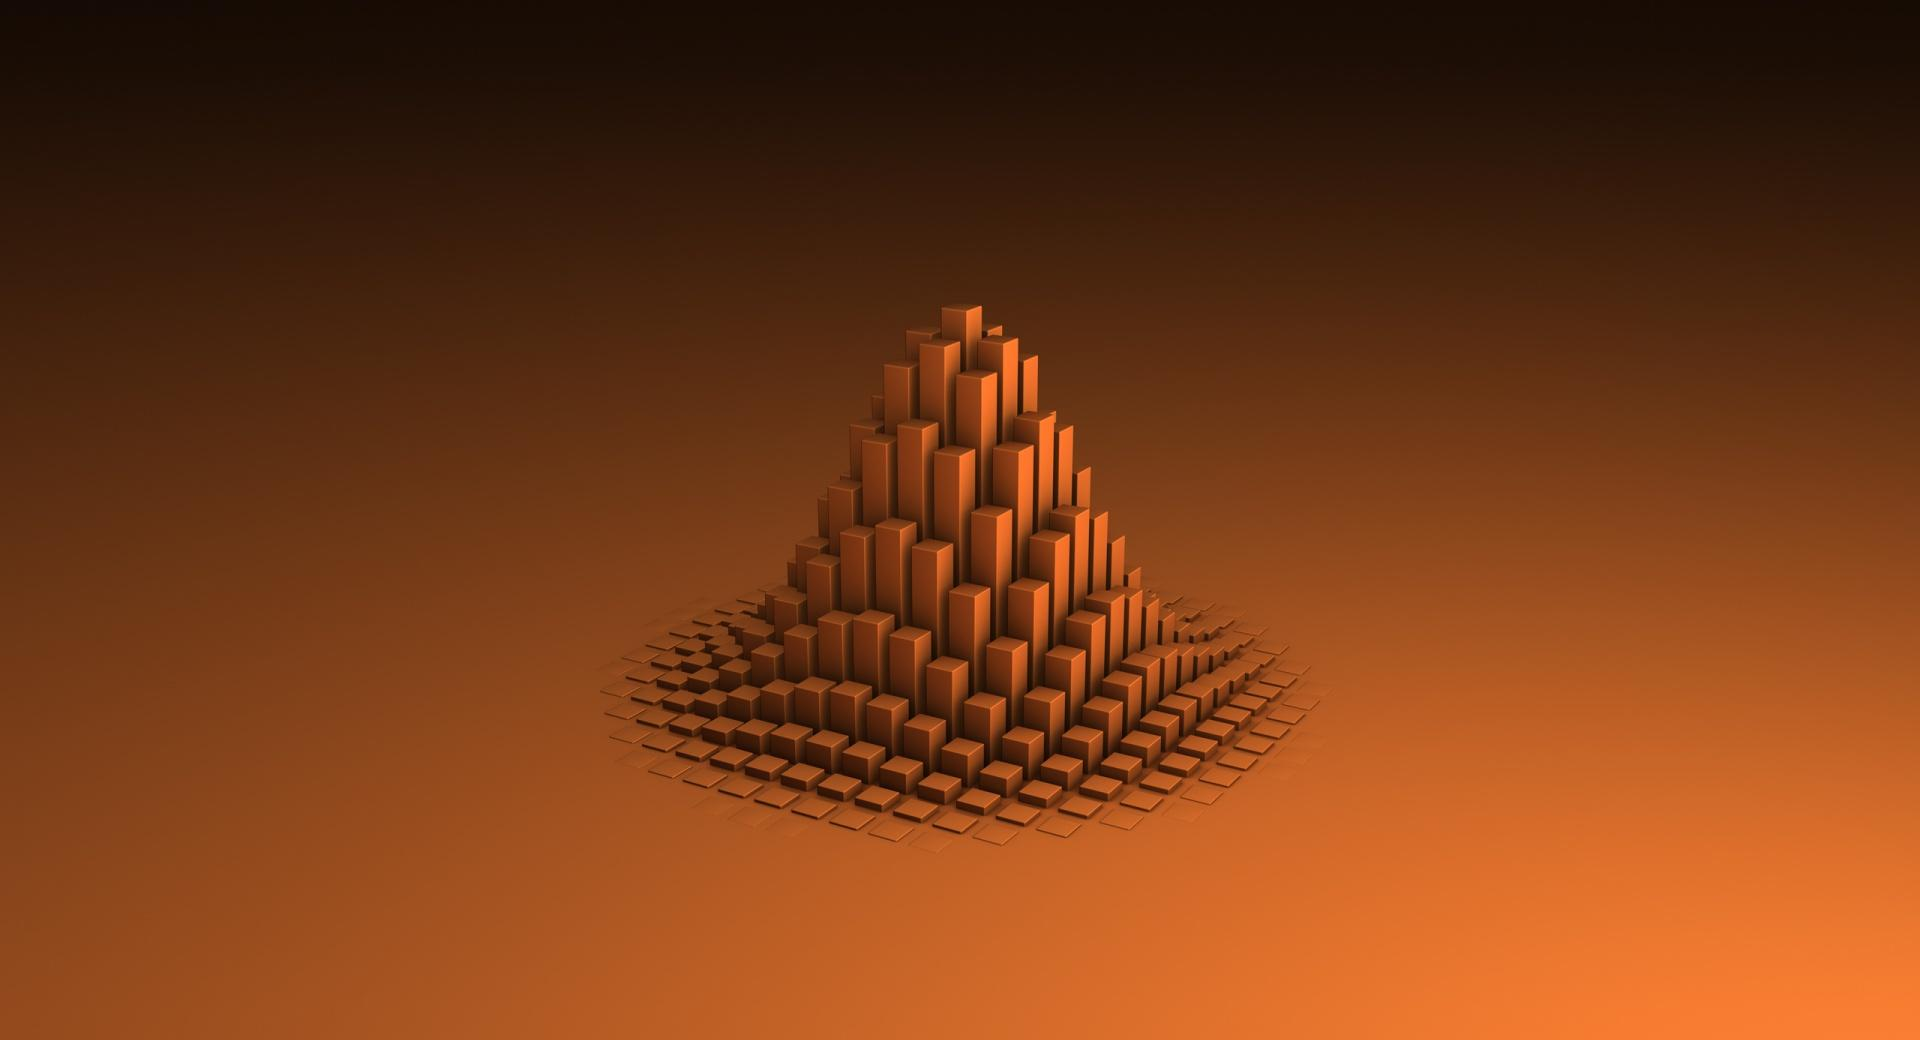 Abstract Pyramid wallpapers HD quality